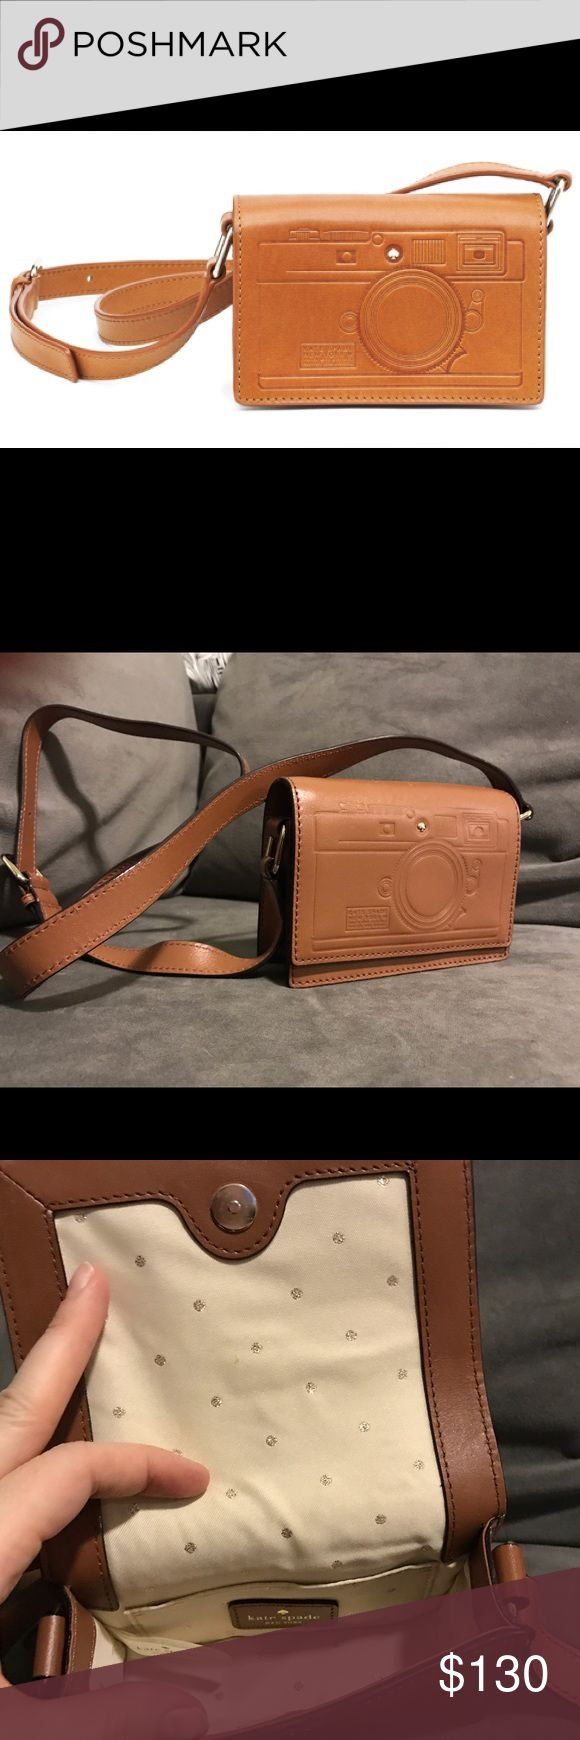 """Kate Spade Camera Crossbody bag Kate Spade New York """"Gwen"""" crossbody - tan small leather bag with camera outline embossed on front flap.  Very cute. New. kate spade Bags Crossbody Bags"""